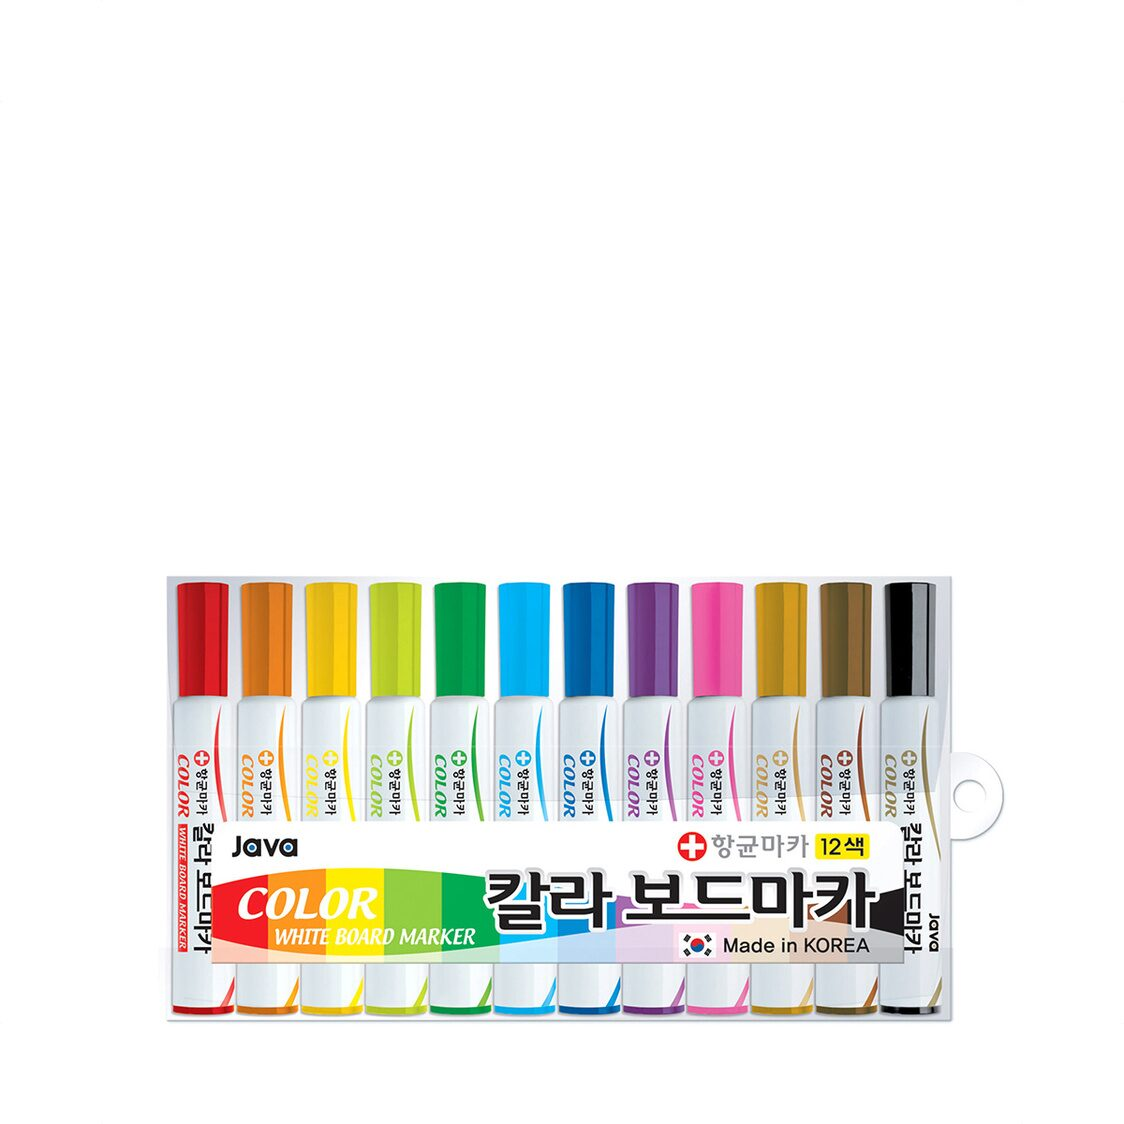 Java Pen Jumbo Whiteboard Marker Antibacterial